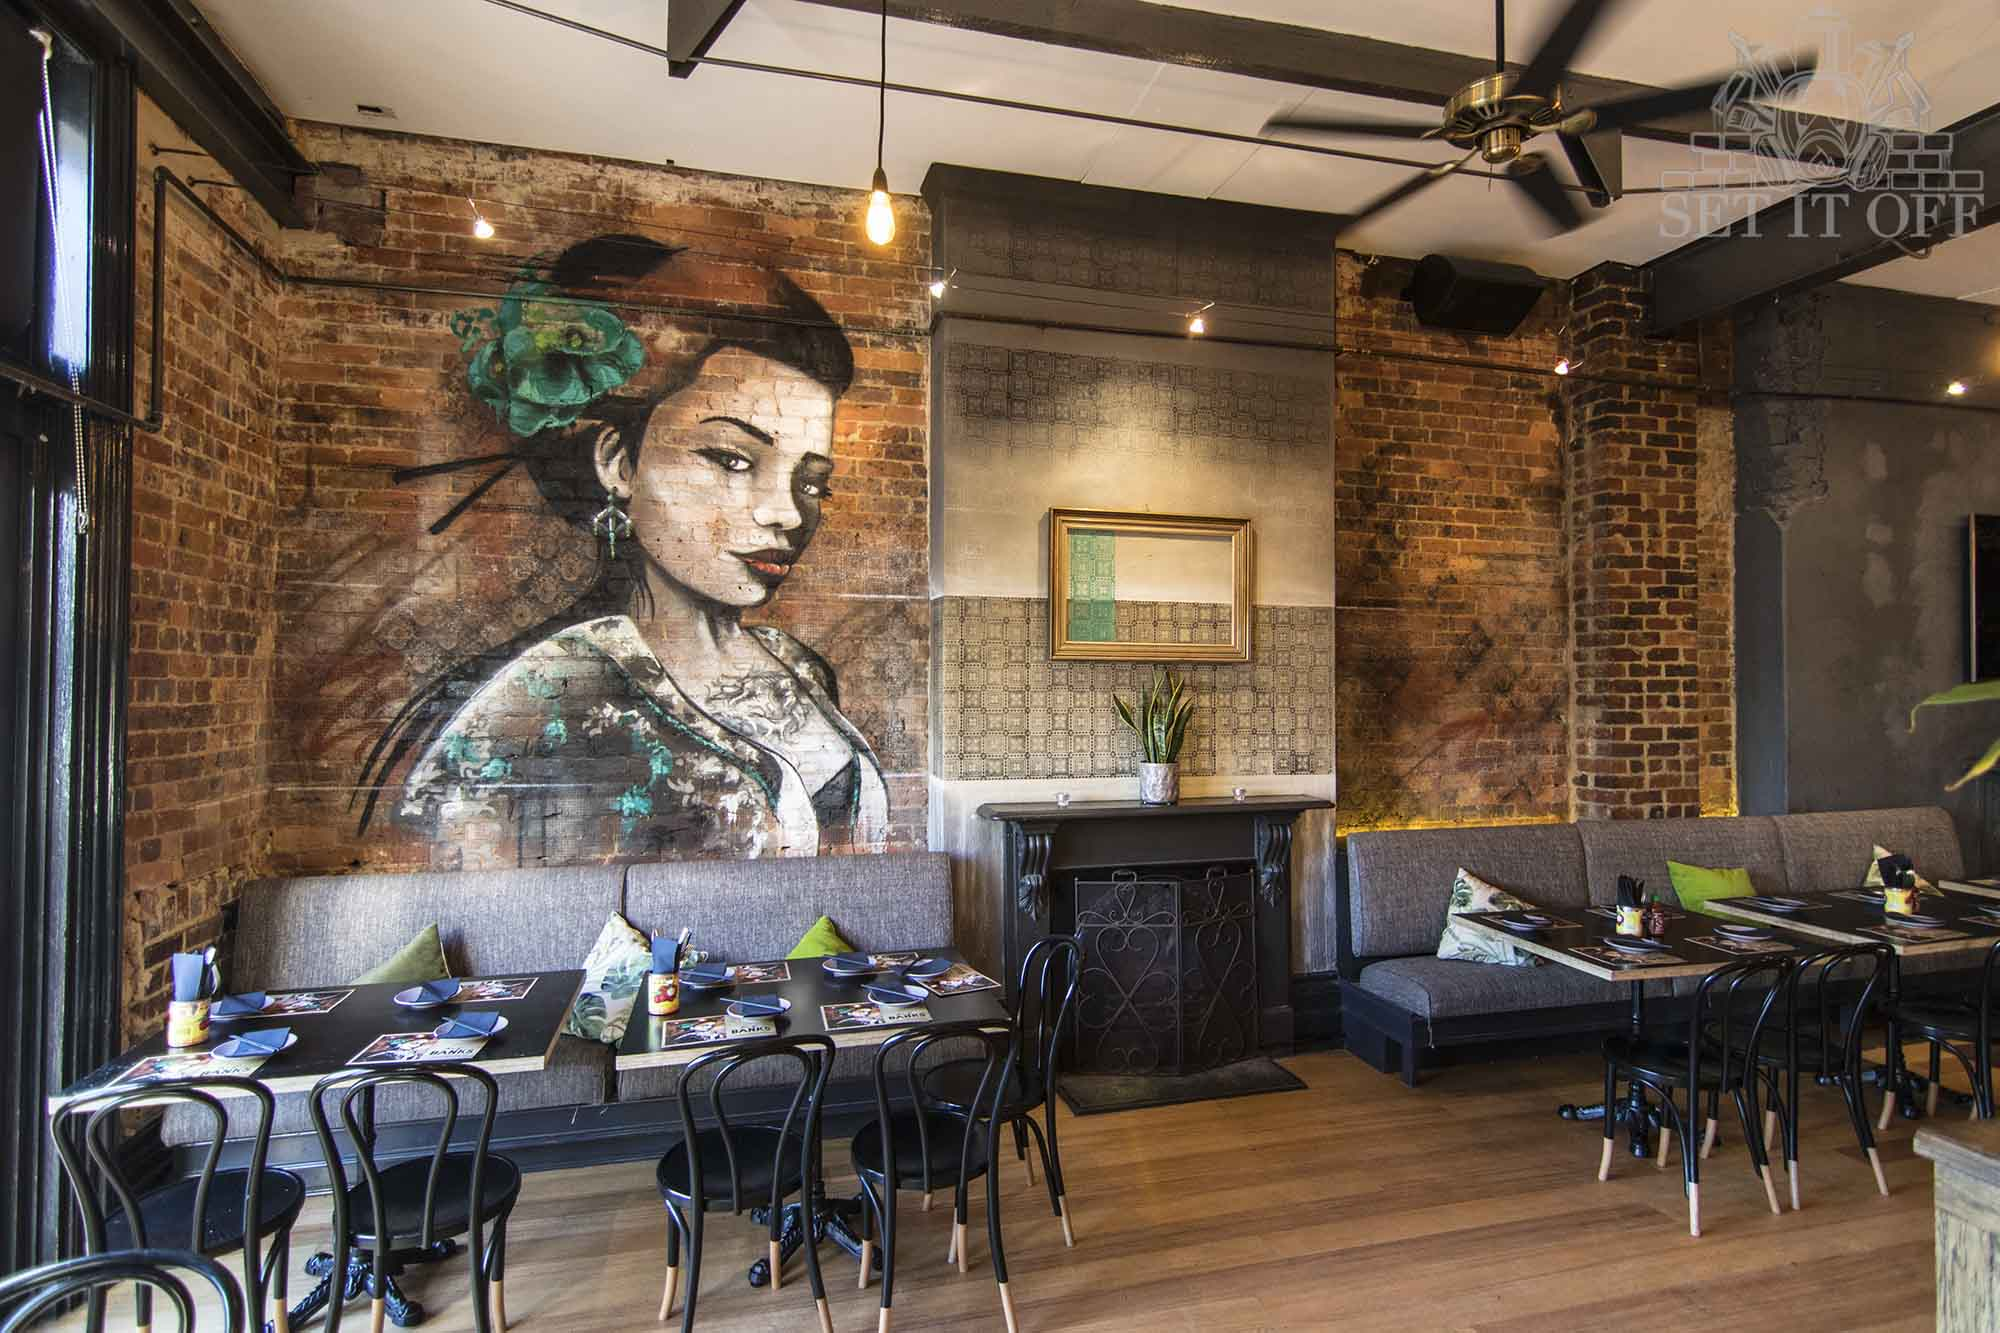 Interior Graffiti Mural Portrait with Fire Place